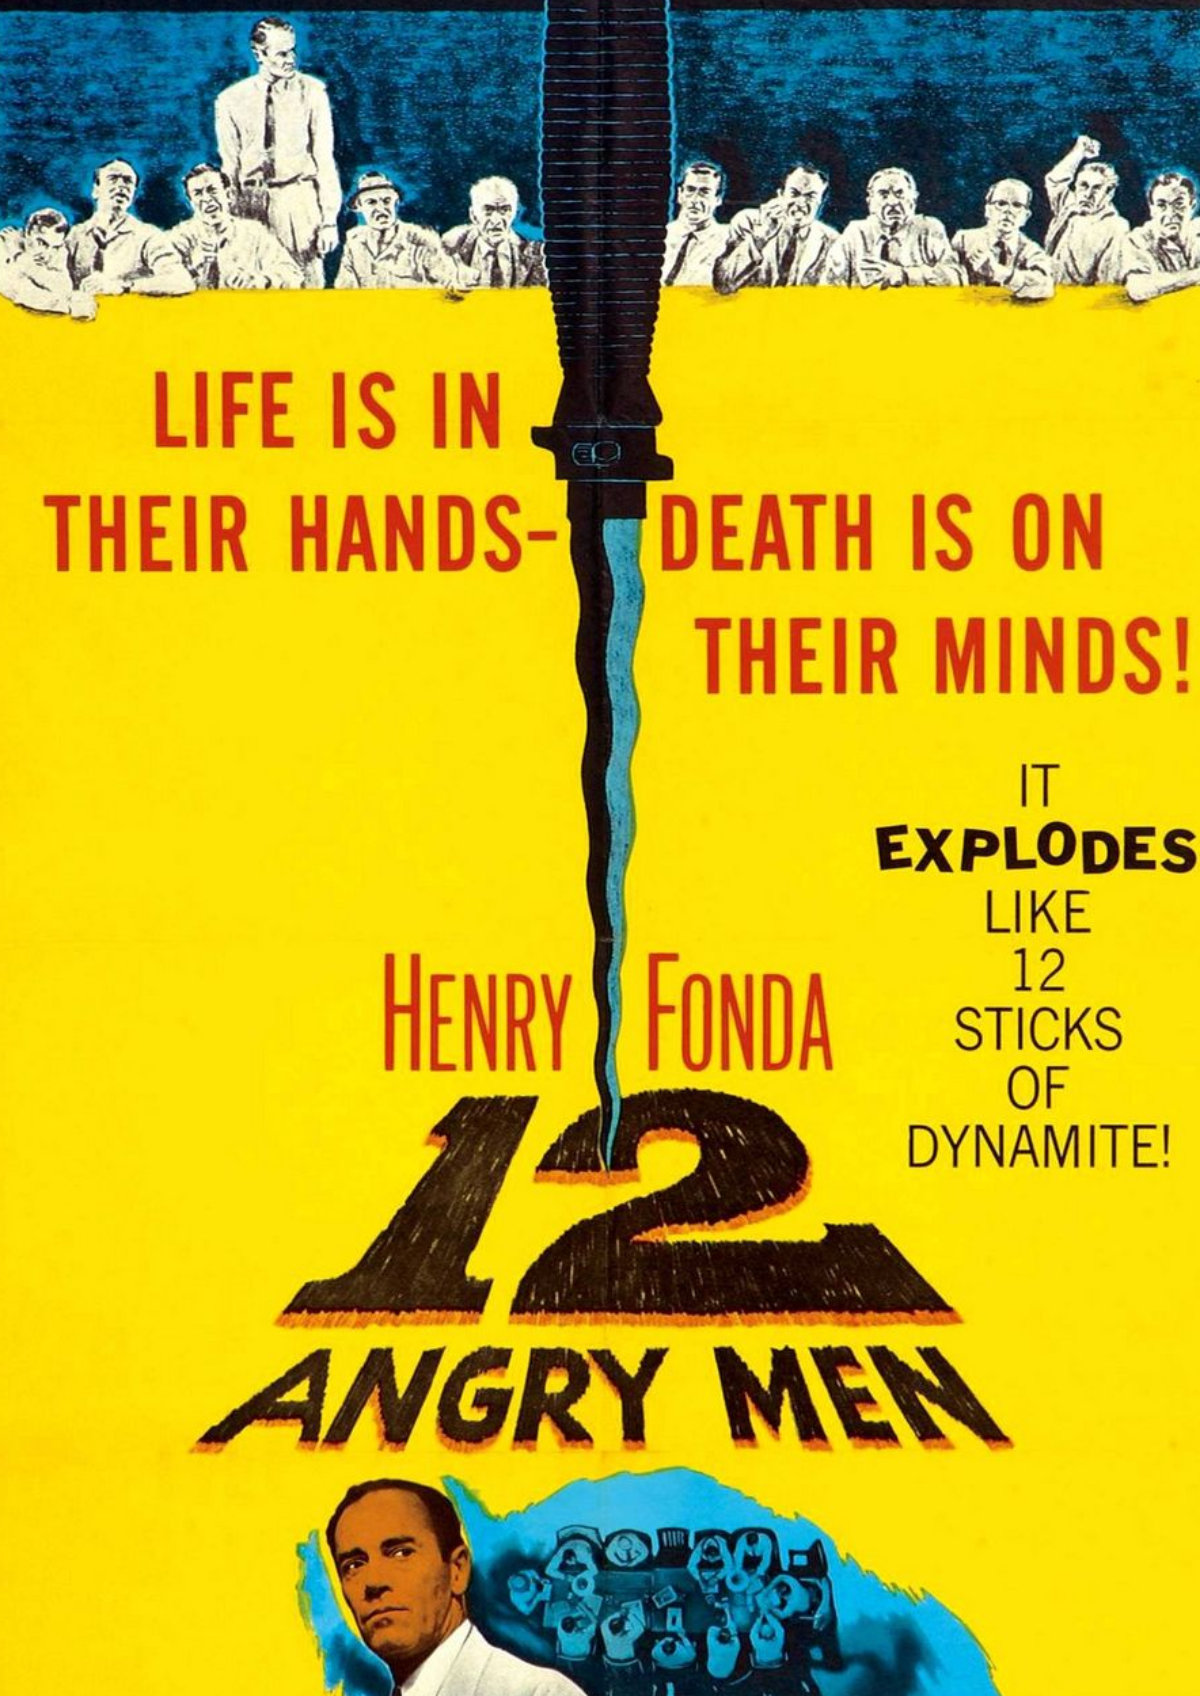 '12 Angry Men' movie poster